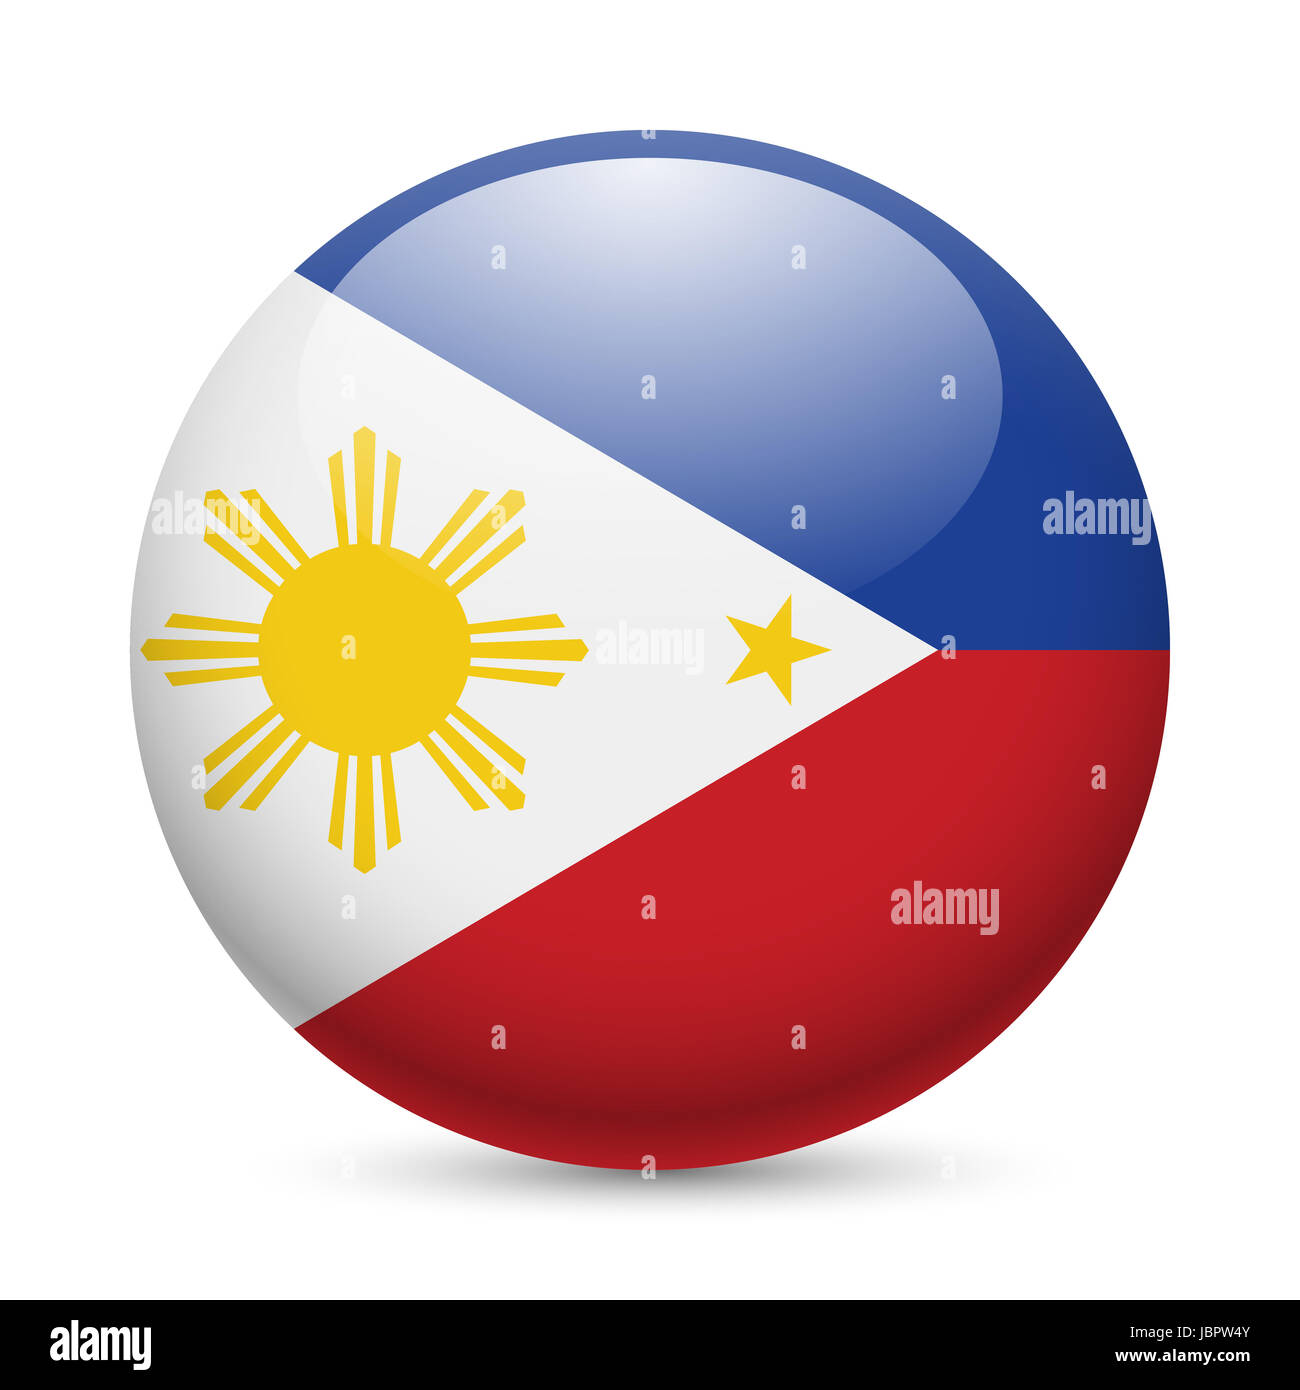 Flag of philippines as round glossy icon button with filipino flag of philippines as round glossy icon button with filipino flag buycottarizona Images